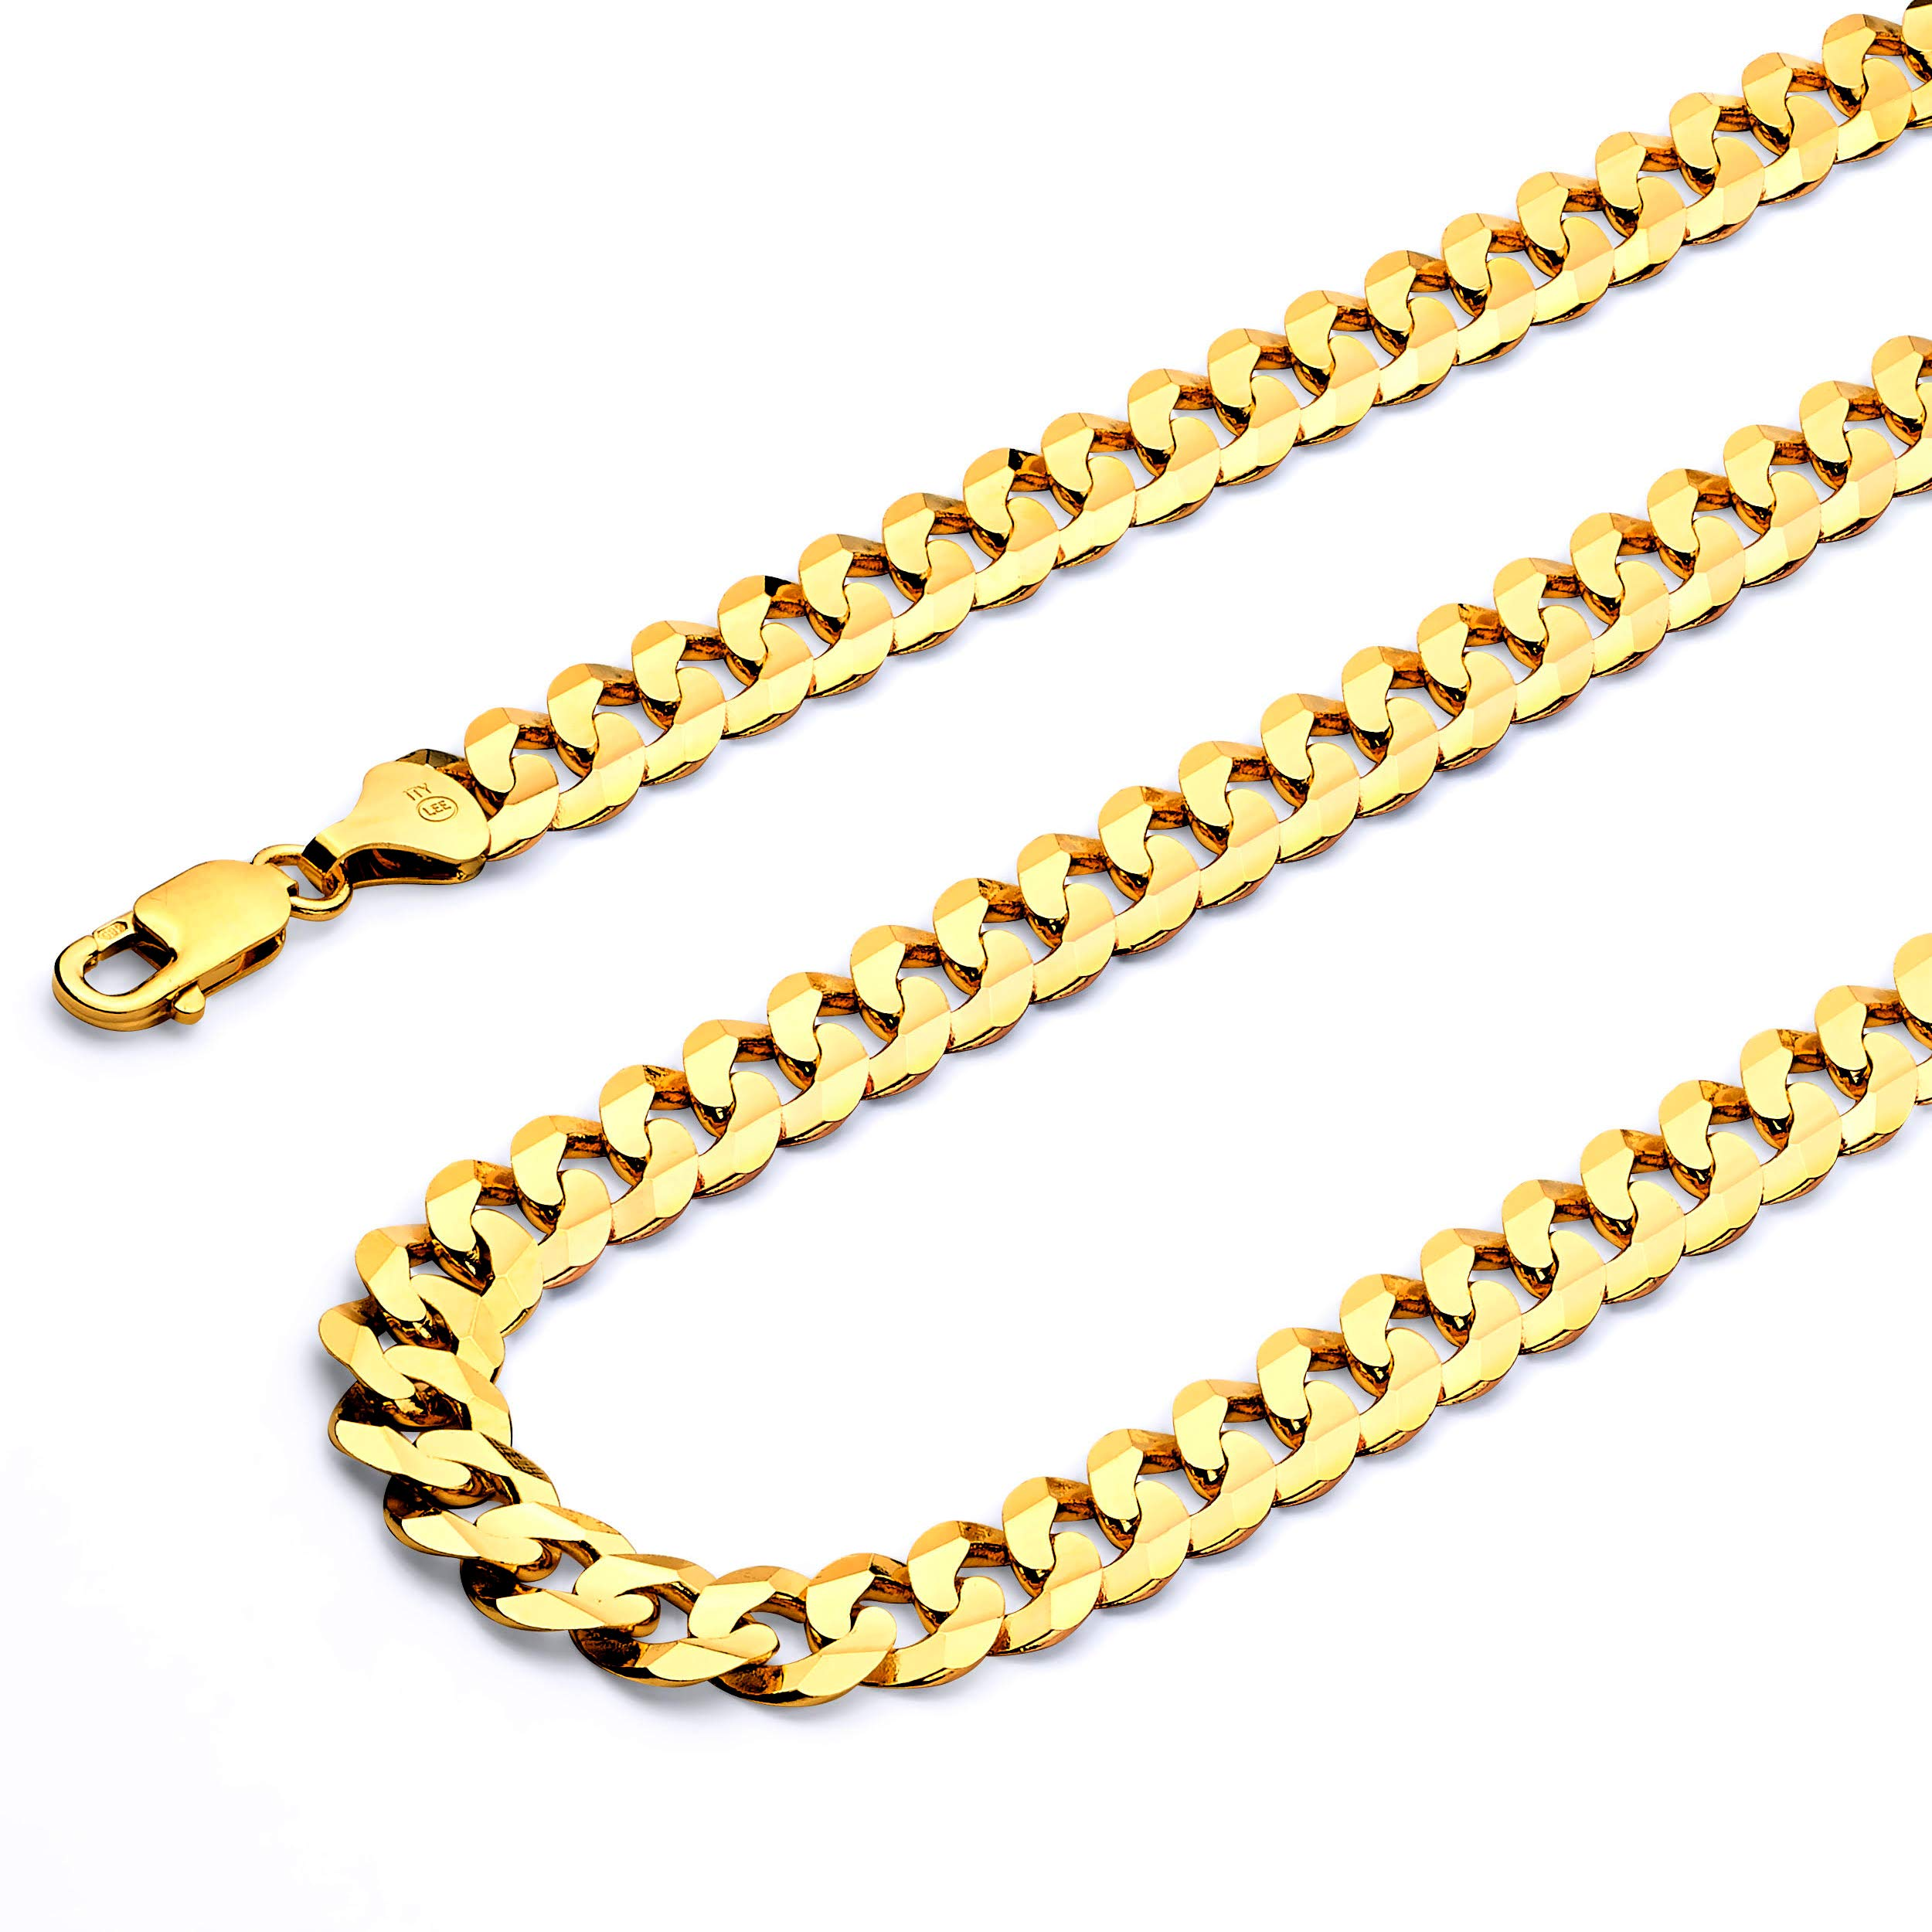 14k Yellow Gold Solid Men's 5mm Cuban Concave Curb Chain Necklace with Lobster Claw Clasp - 24''